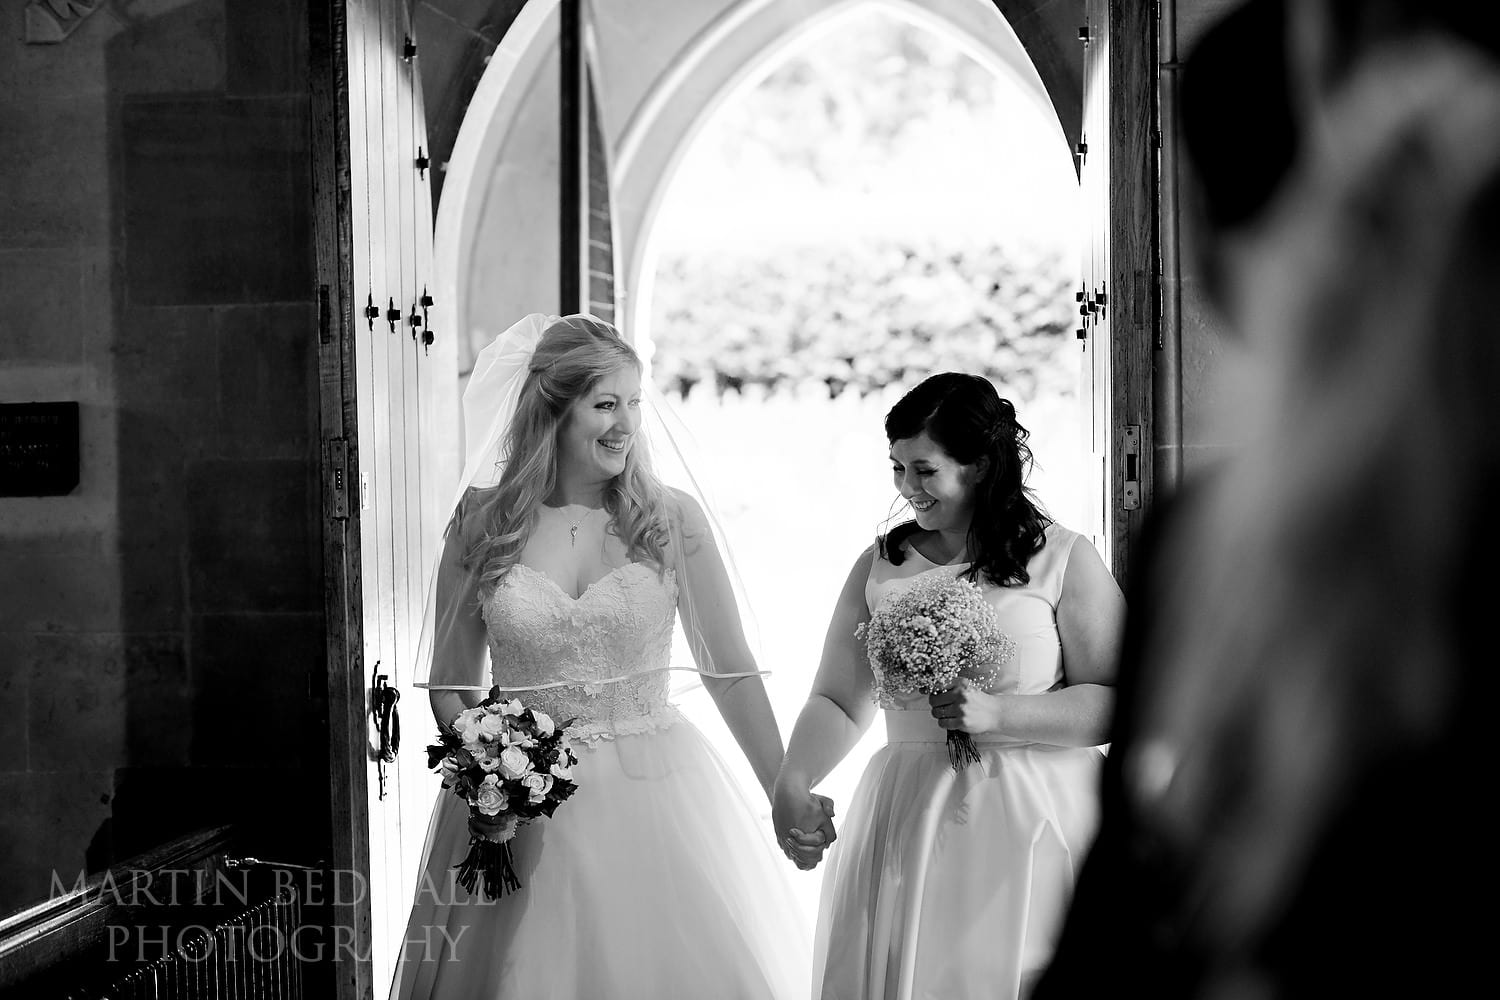 Bride walks into the church with her sister